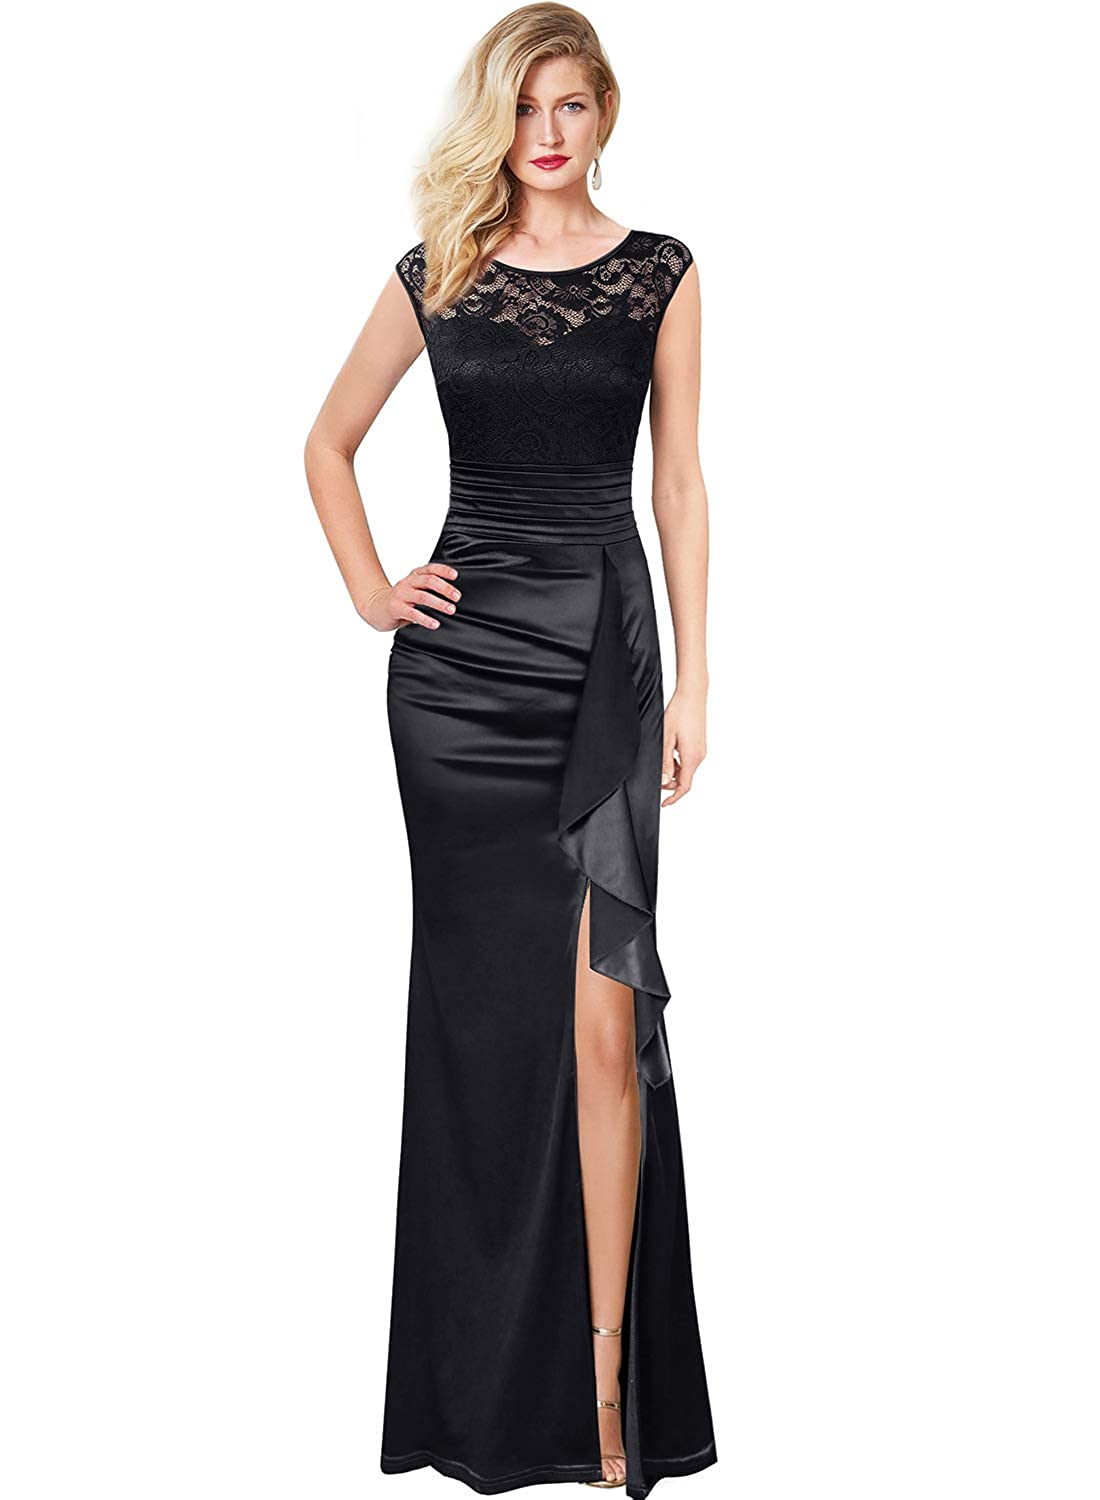 Black2 VFSHOW Womens Formal Ruched Ruffles Evening Prom Wedding Party Maxi Dress